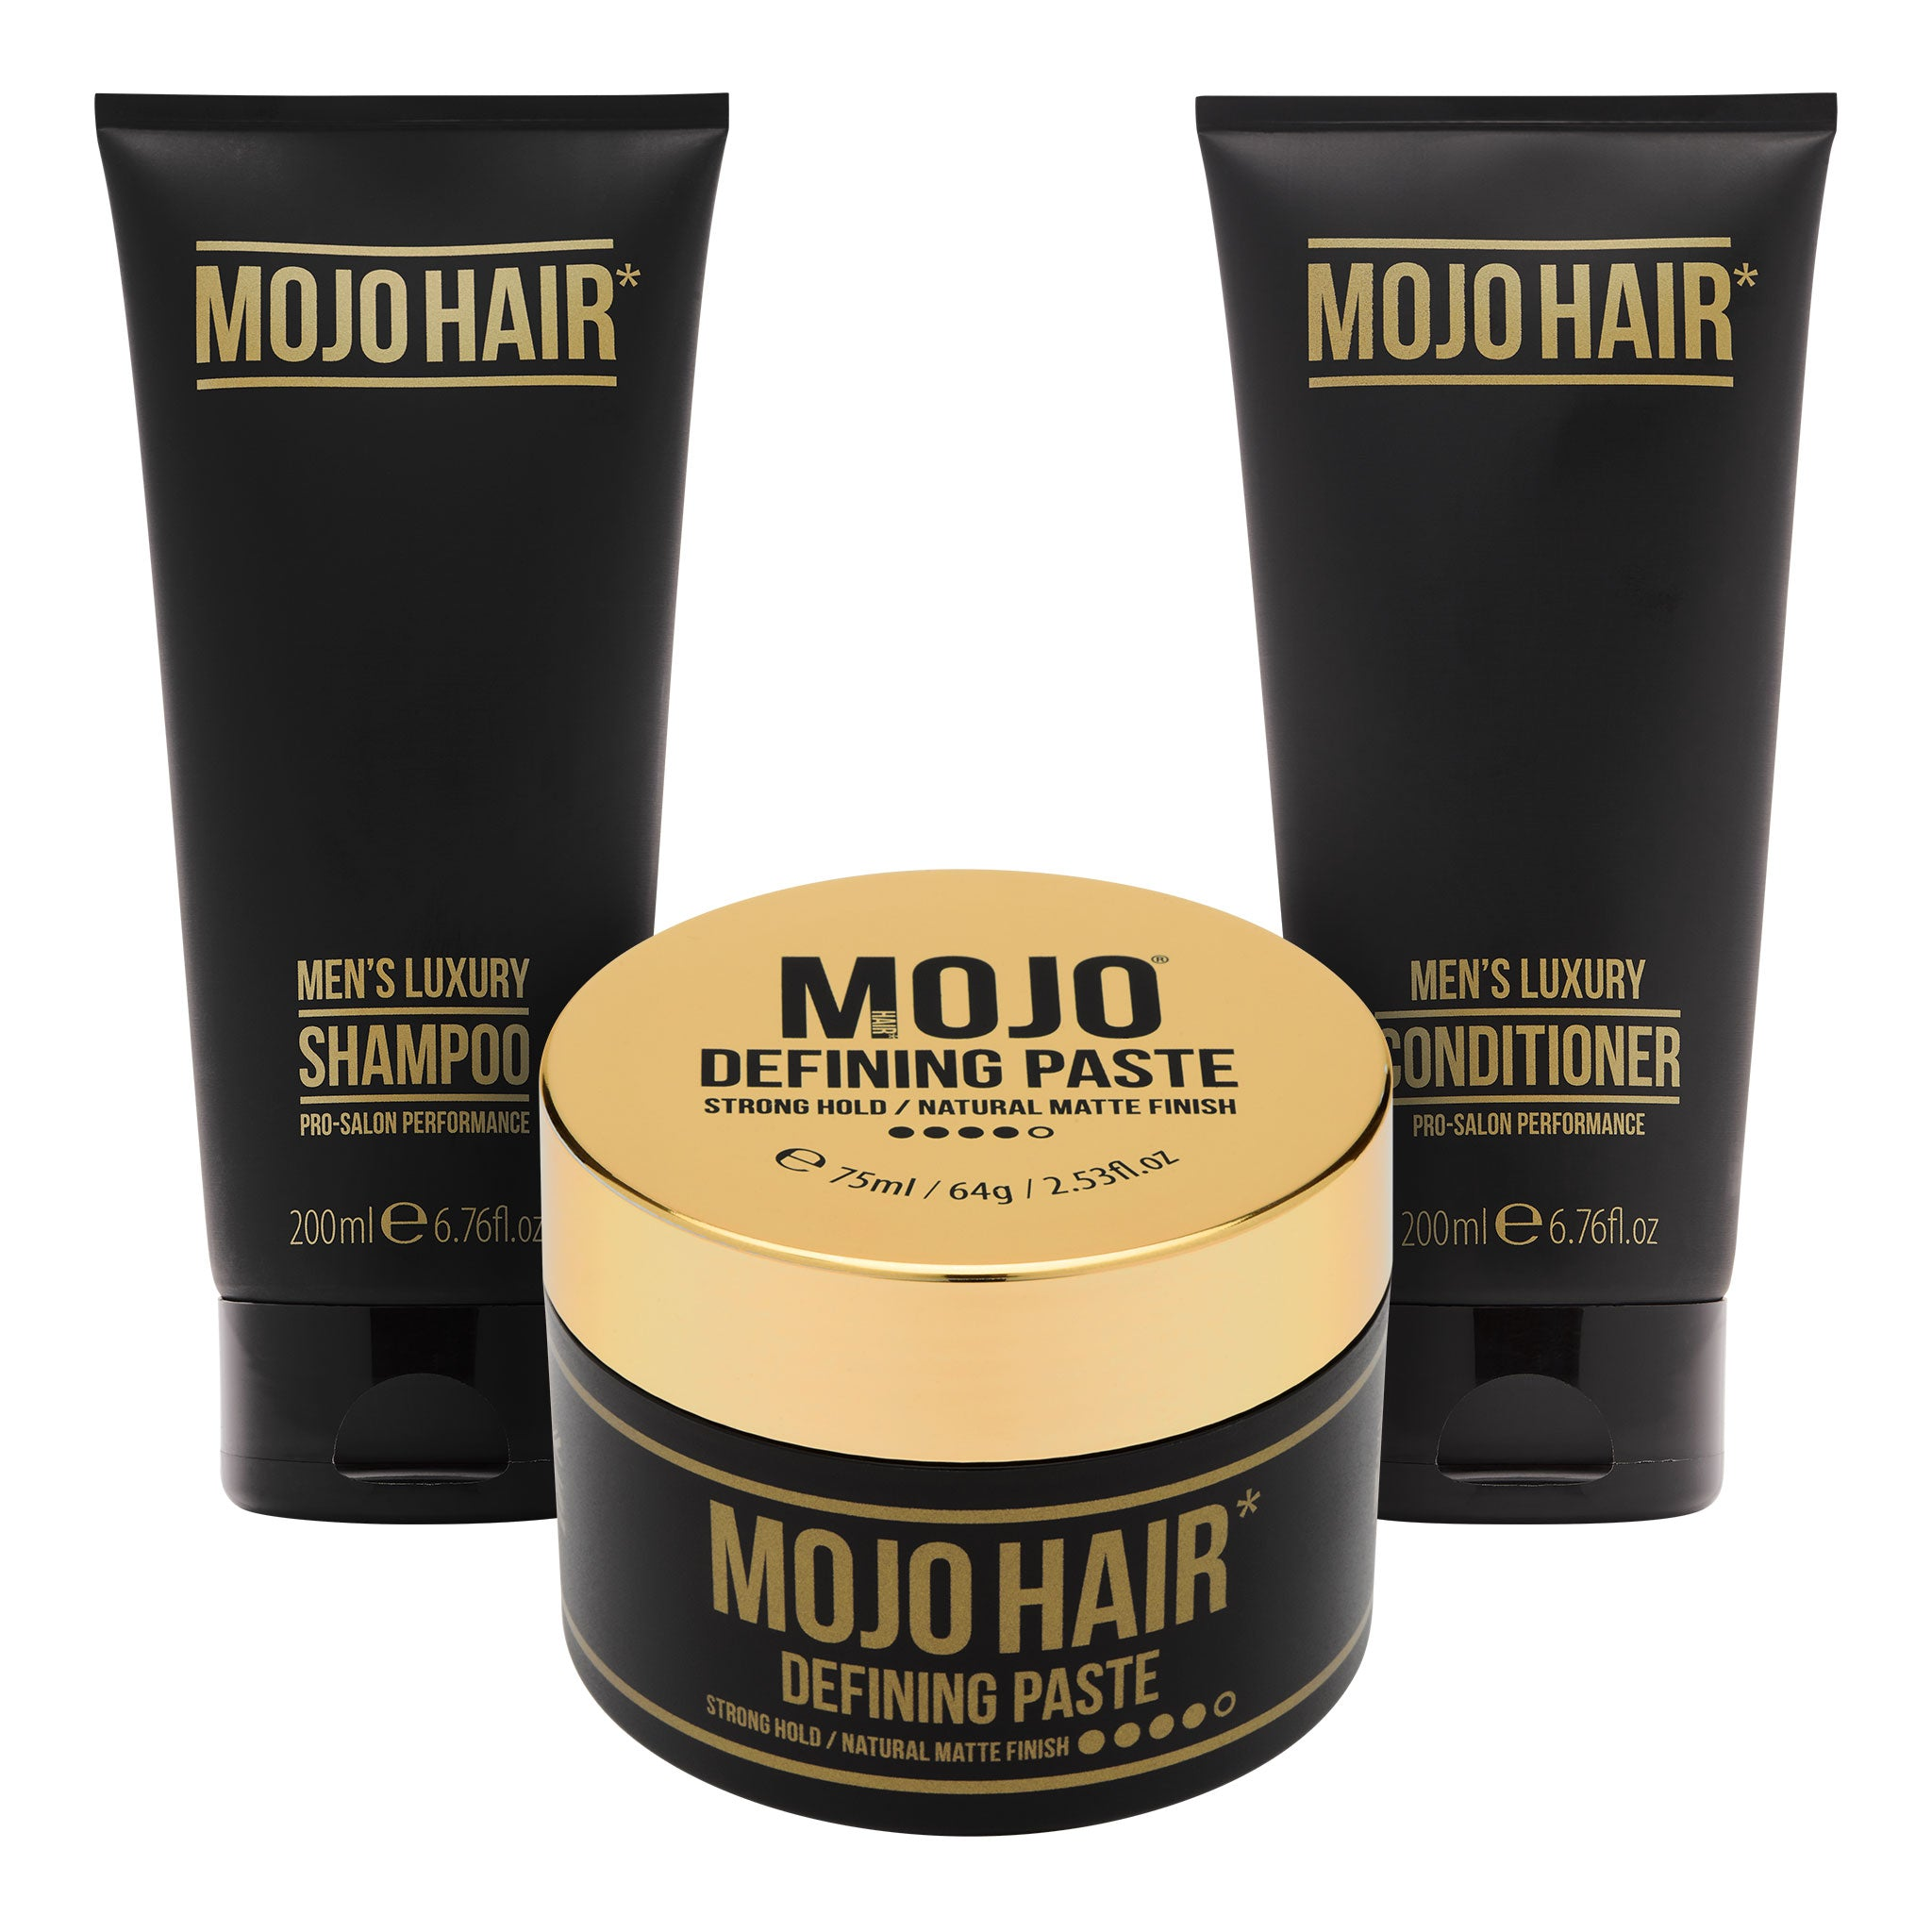 Mojo Hair Defining Paste Set with Shampoo & Conditioner